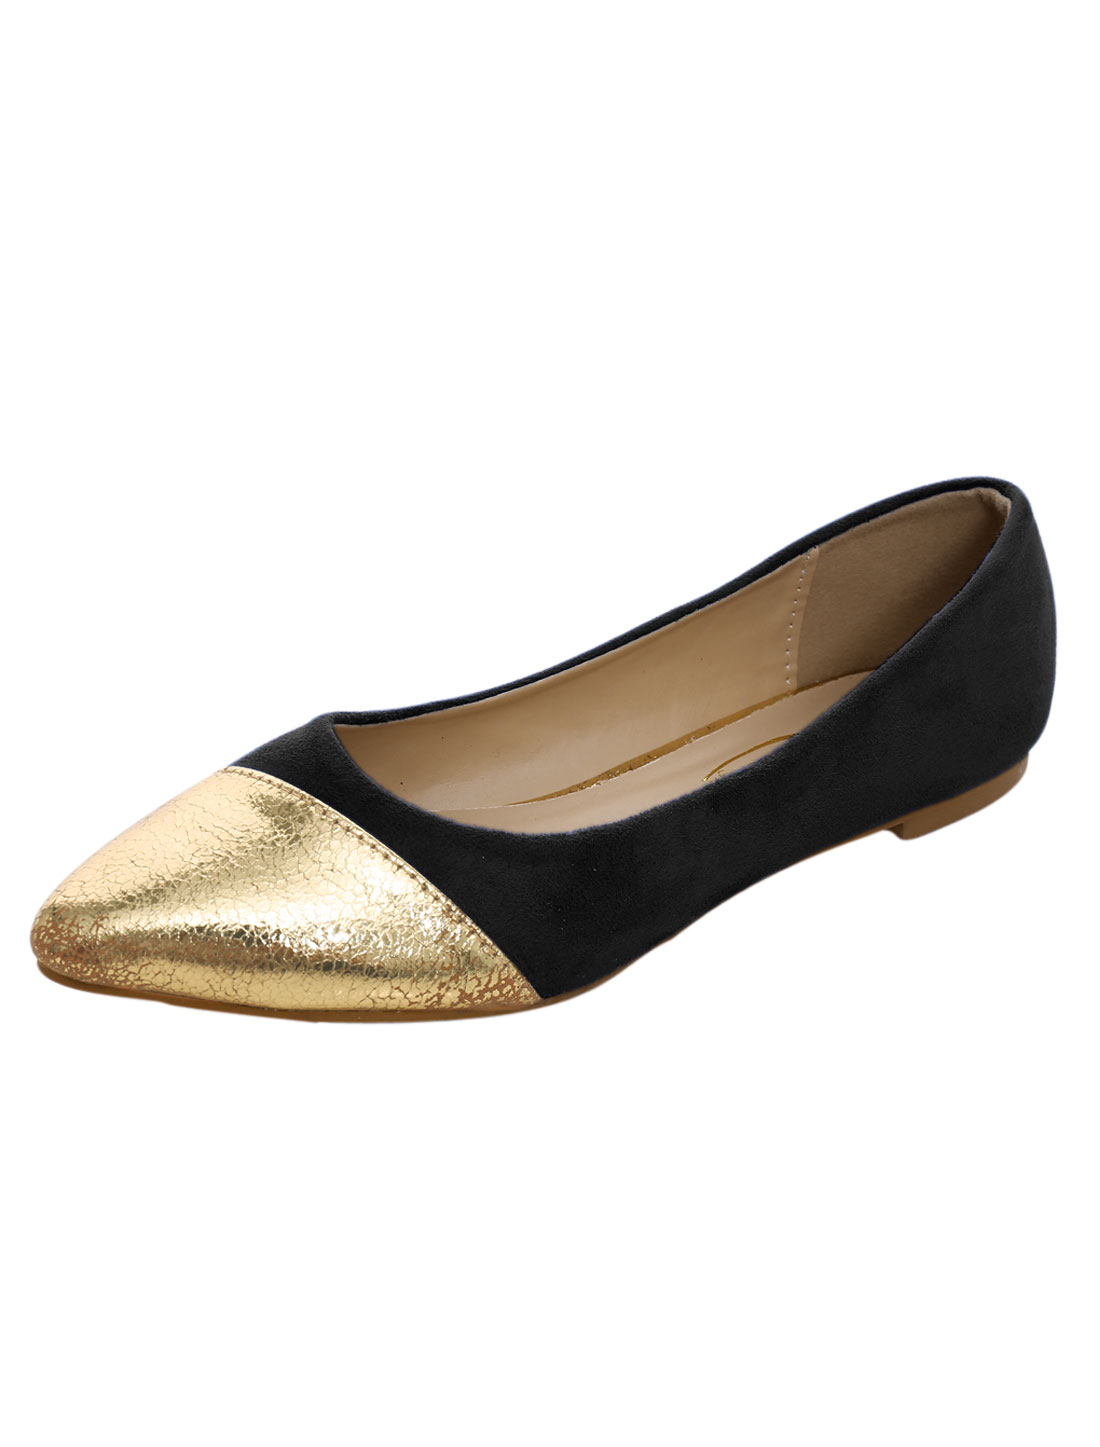 Ladies Color Blocking Panel Pointed Toe Flats Shoes Solid Black US 8